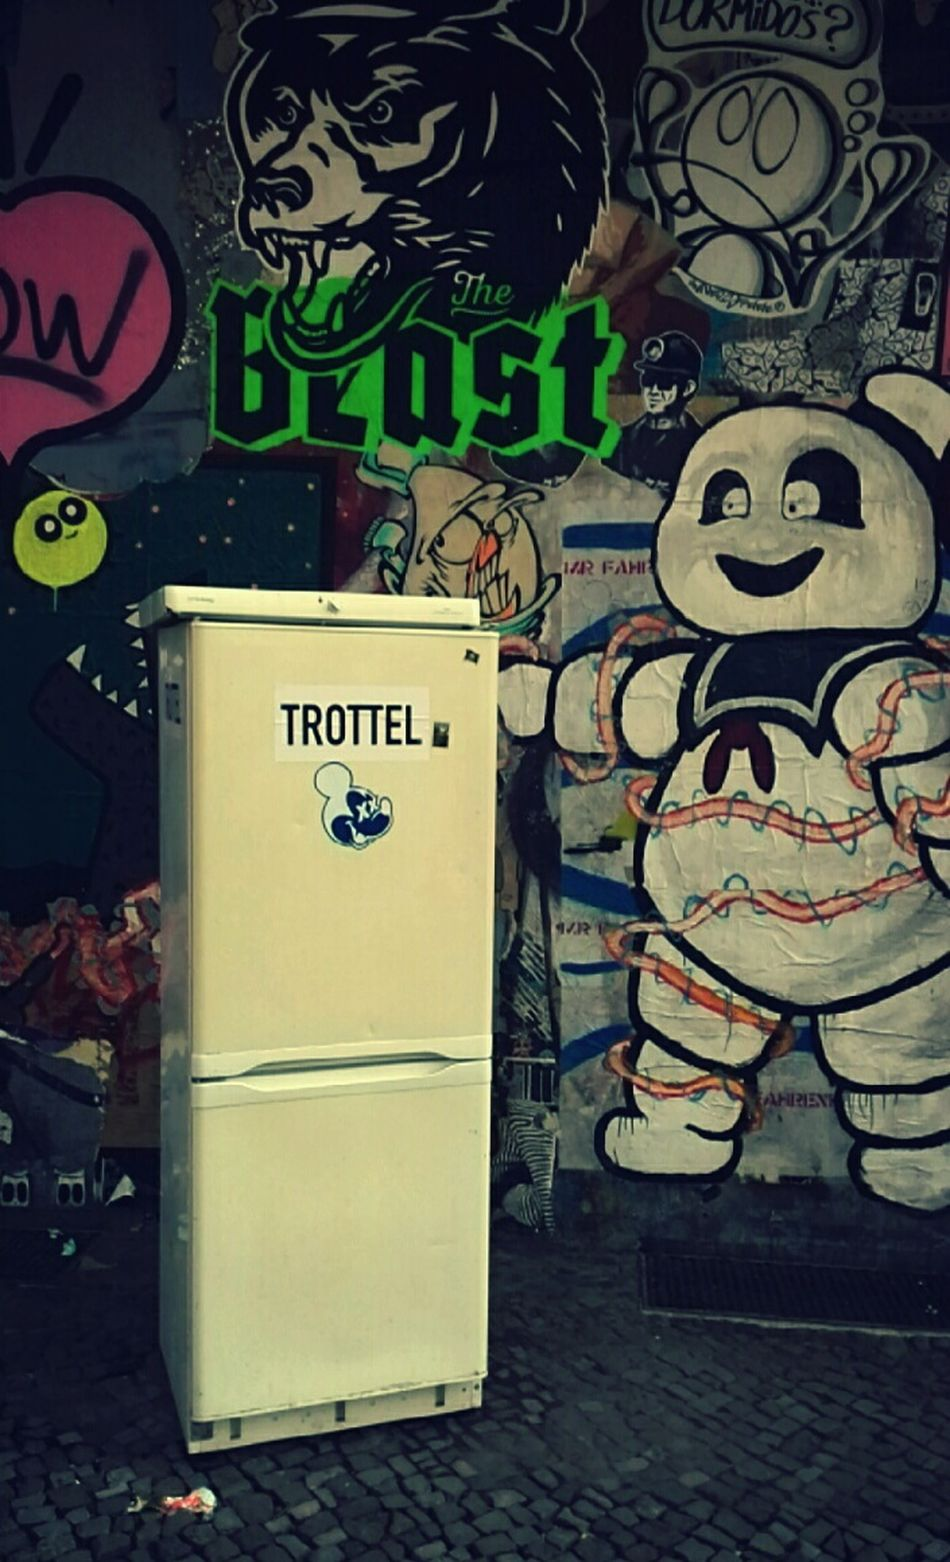 Trottel Fool  Idiot Fridge Berliner Ansichten Wohnglück Streetphotography Streetart Ghostbusters Marshmallowman Ghost Graffiti Signs Icebox Hanging Out Out Of Control Kiezlife Hanging Out Love Is In The Air Check This Out Cheese! Fun Urban Spring Fever Here Belongs To Me Things I Like Capture Berlin